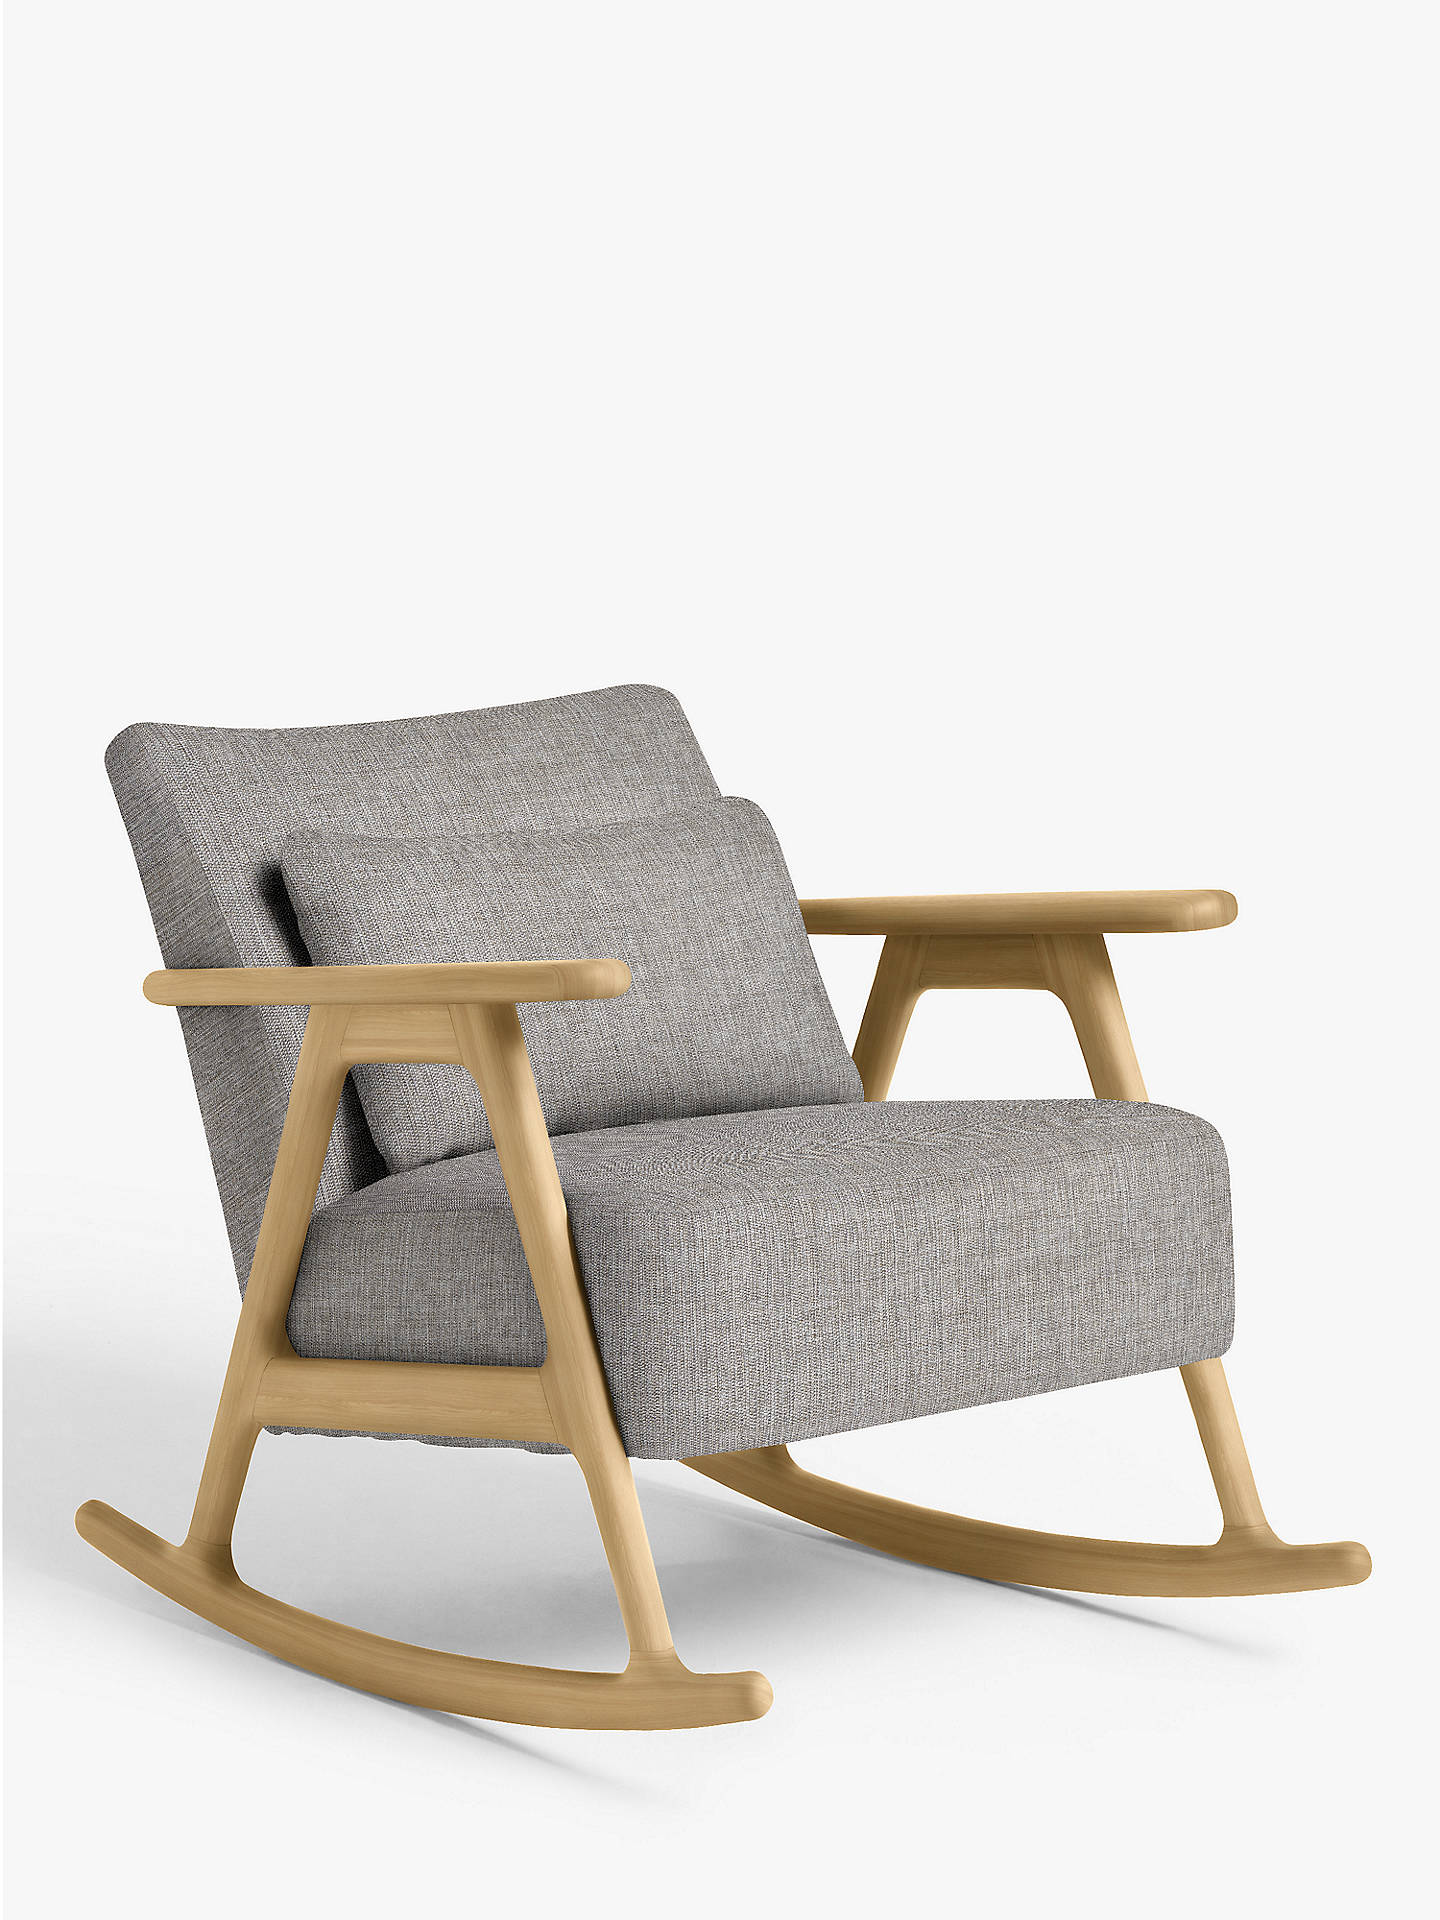 Peachy John Lewis Partners Hendricks Rocking Chair Light Wood Frame Stanton French Grey Download Free Architecture Designs Sospemadebymaigaardcom